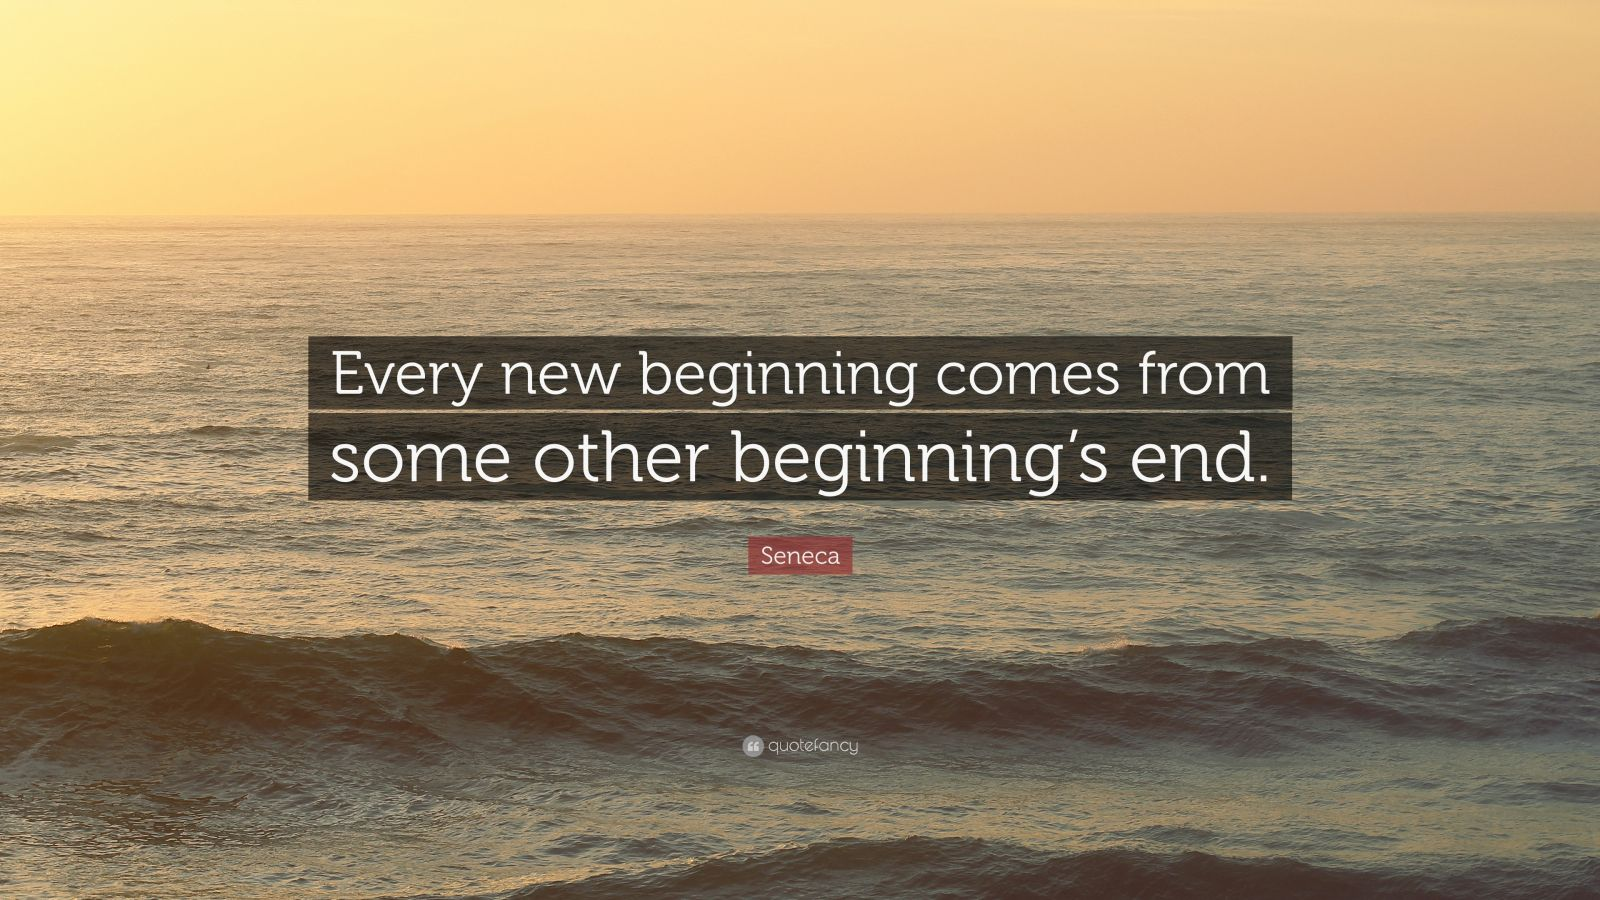 Mother Teresa Quotes Wallpapers Seneca Quote Every New Beginning Comes From Some Other